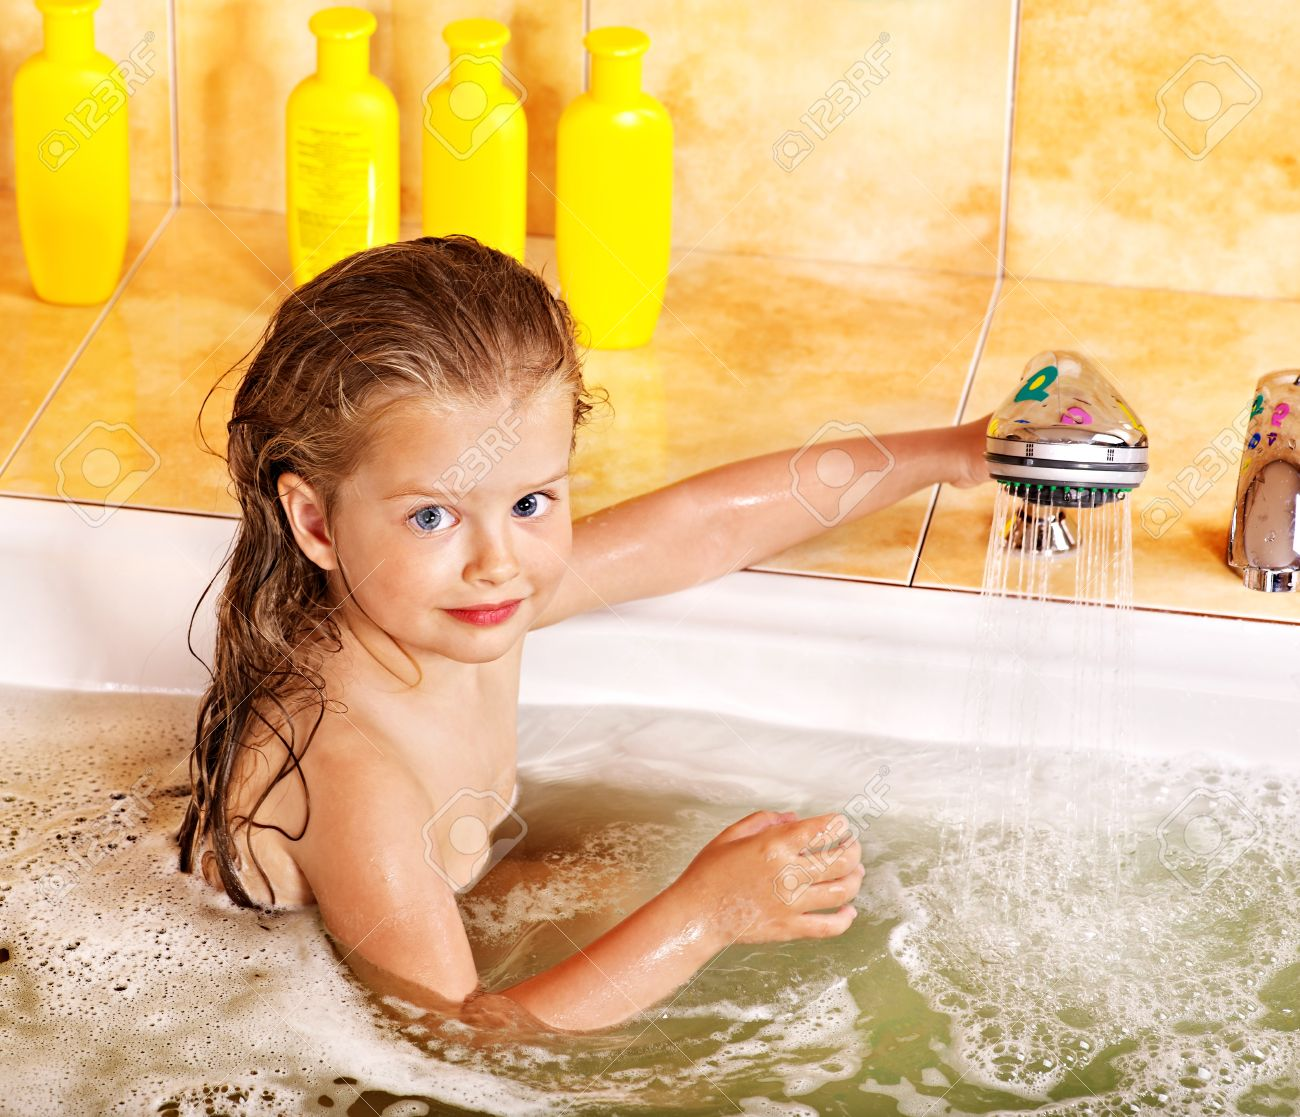 Children in shower Stock Photo - Happy child bathing in bubble bath .